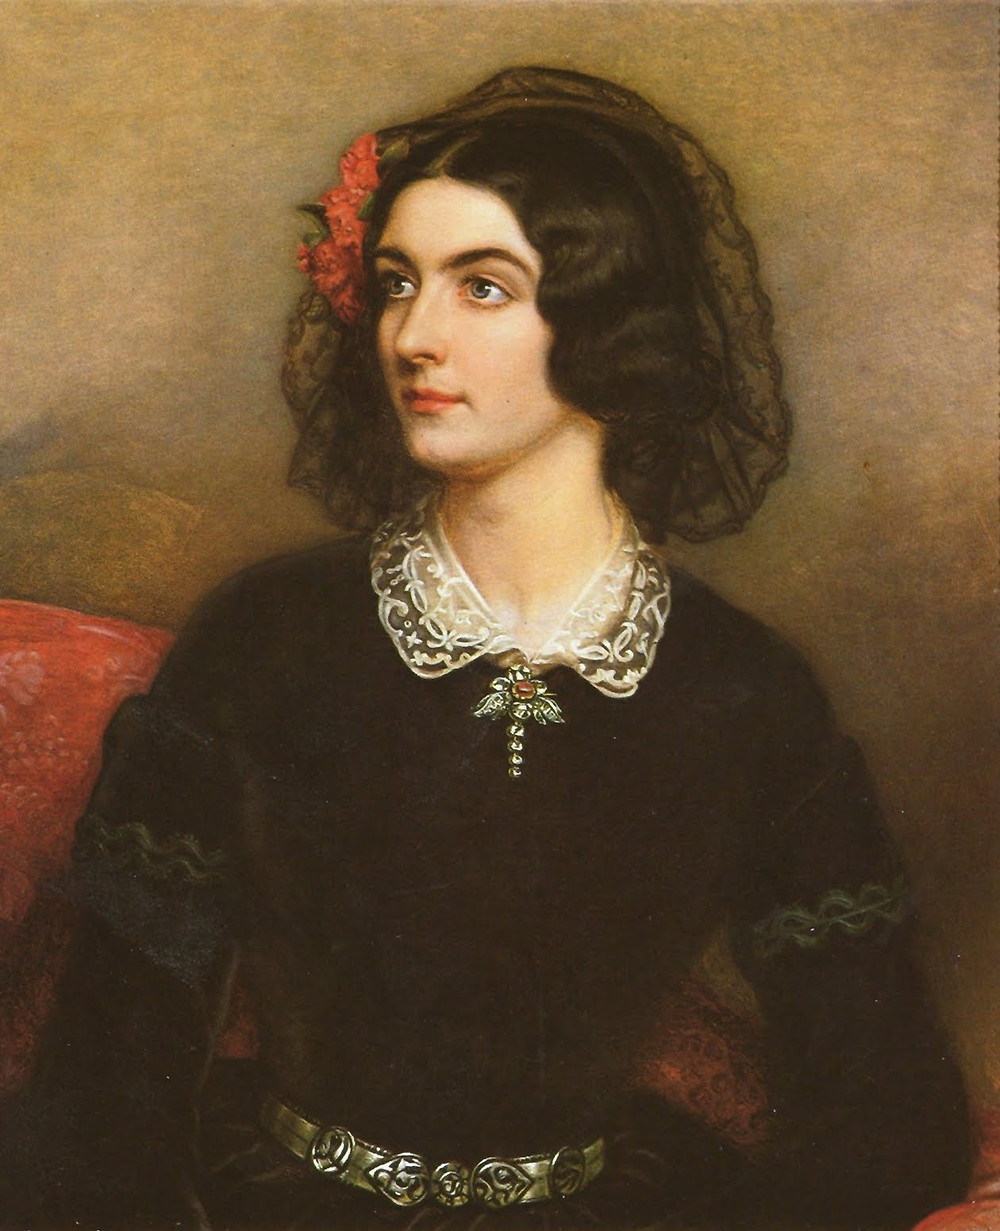 Lola Montez, King Ludwig's lover and the woman for whom he abdicated the throne